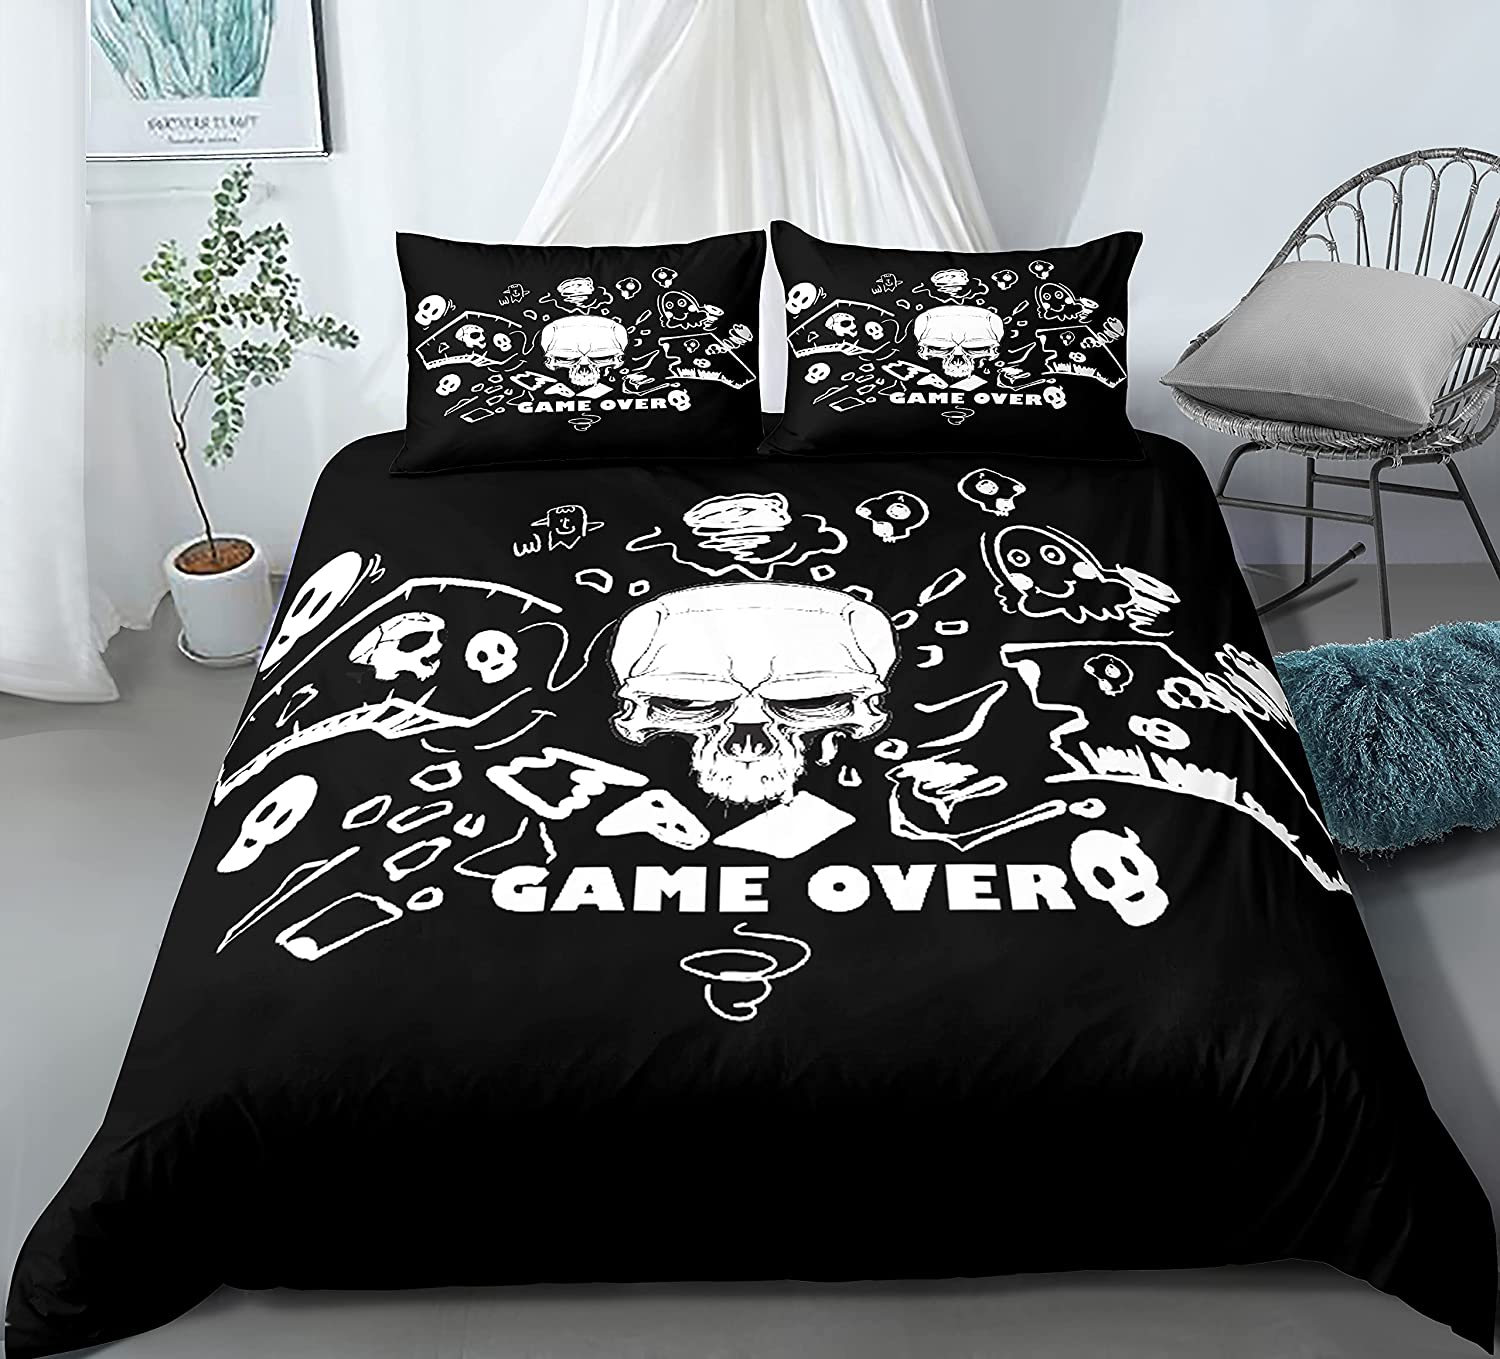 Heartgown Gamer Duvet Cover Queen Size Game Boys for Overseas parallel import regular item Girls Beddi Large discharge sale